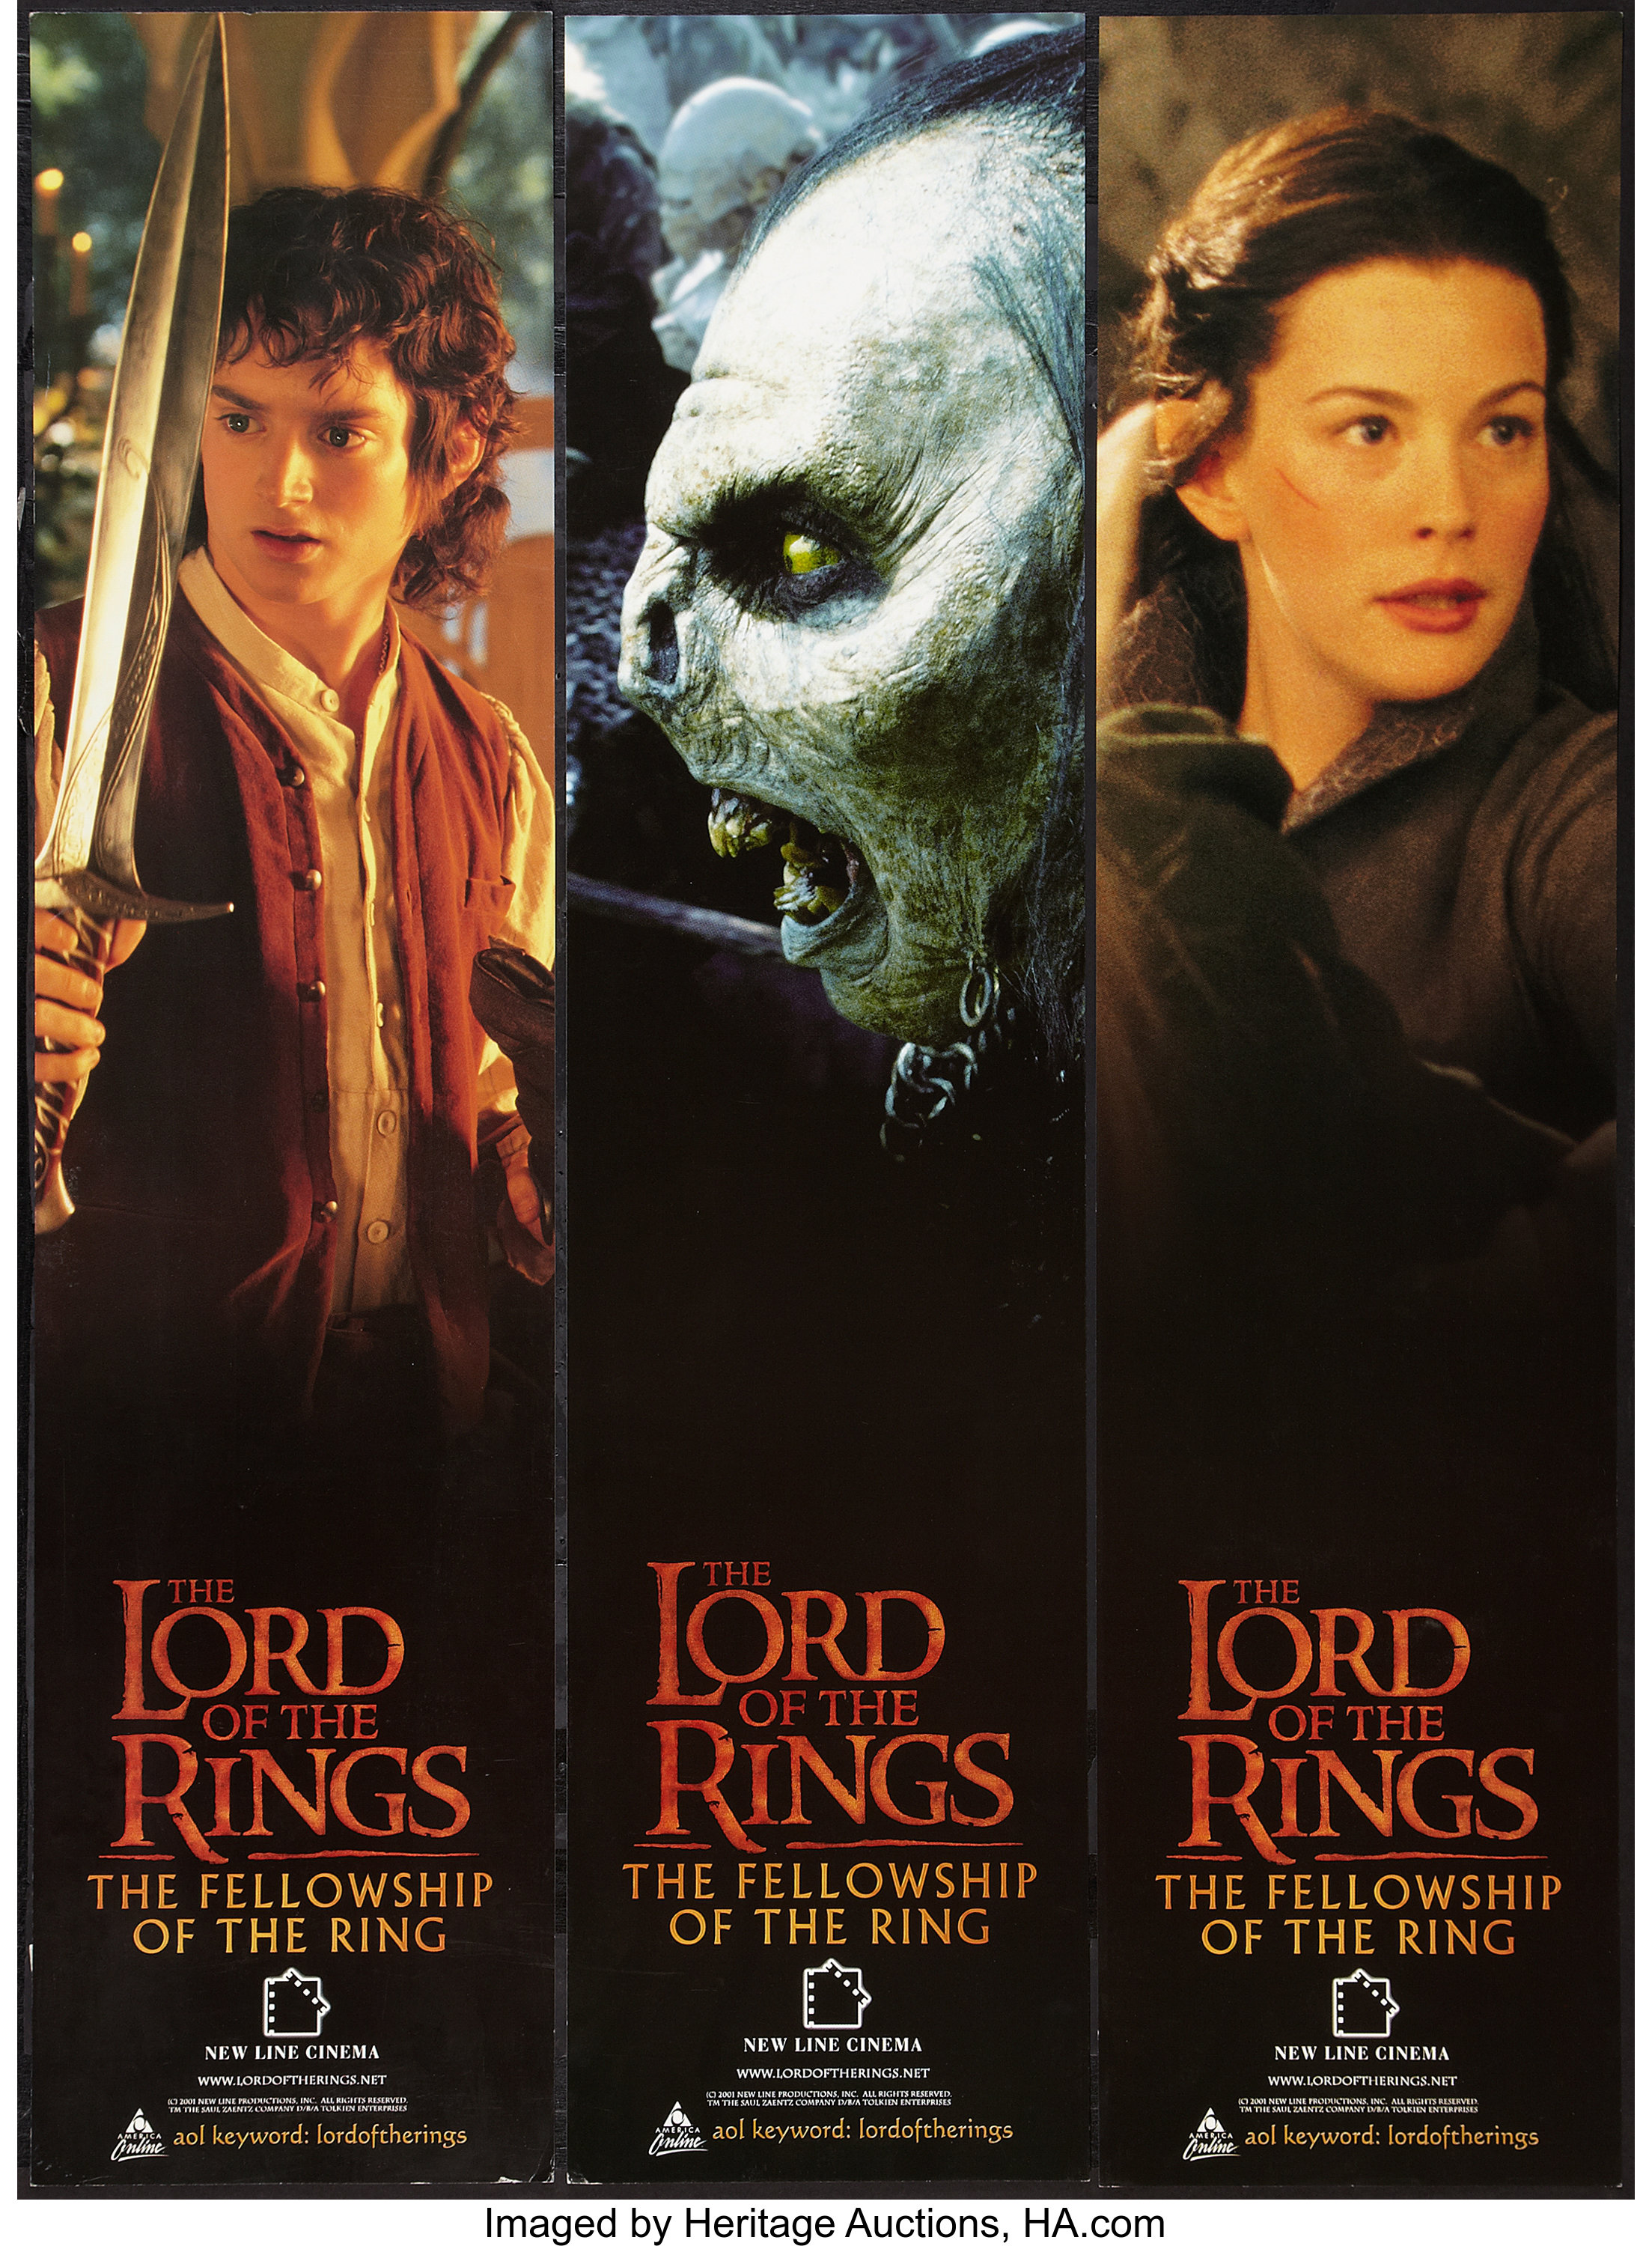 The Lord Of The Rings The Fellowship Of The Ring New Line 2001 Lot 54286 Heritage Auctions